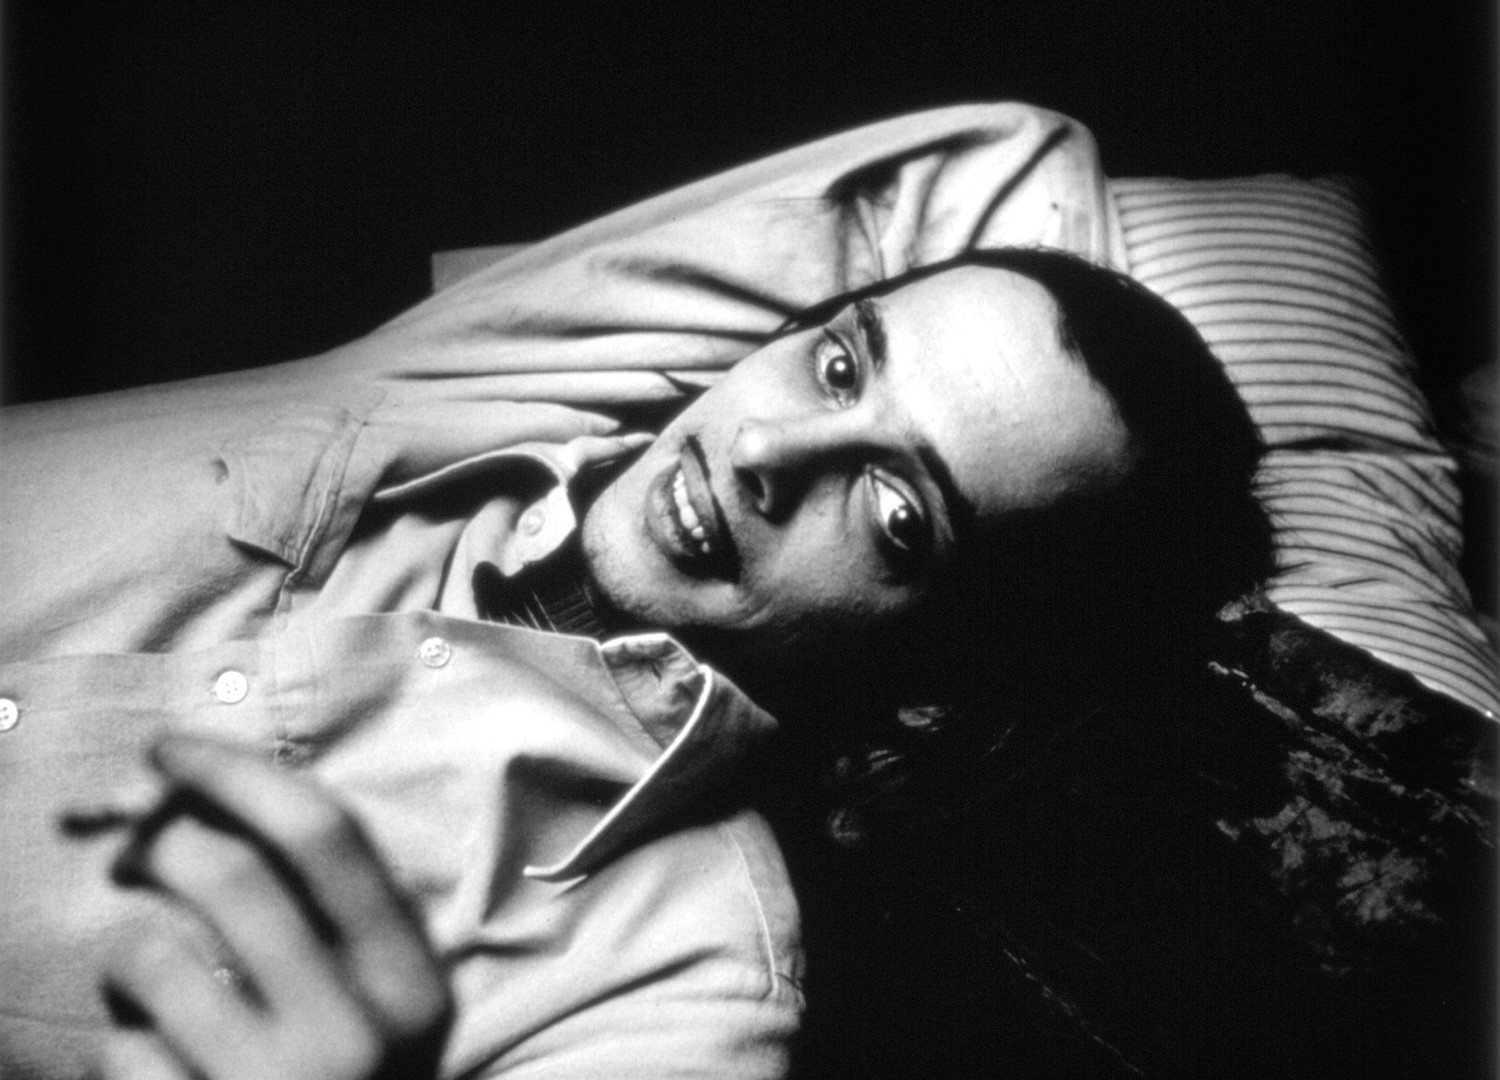 Peter Hujar, John Waters (I), 1975